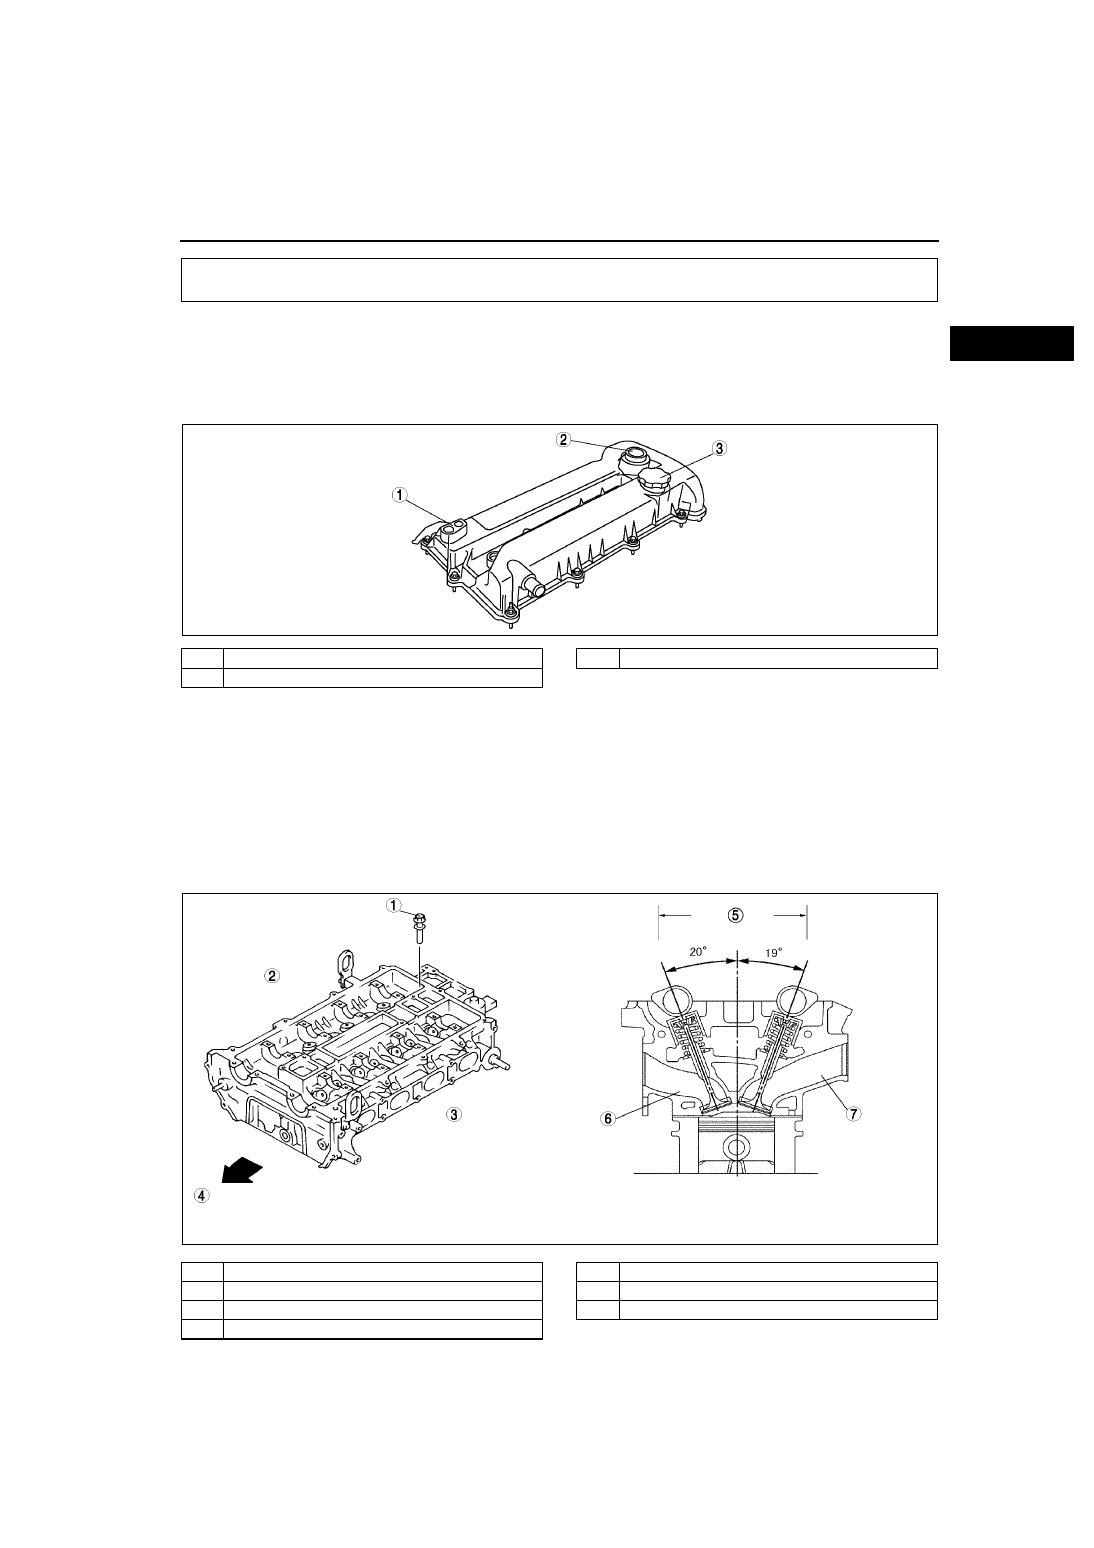 Mazda 6 Engine Part Diagram